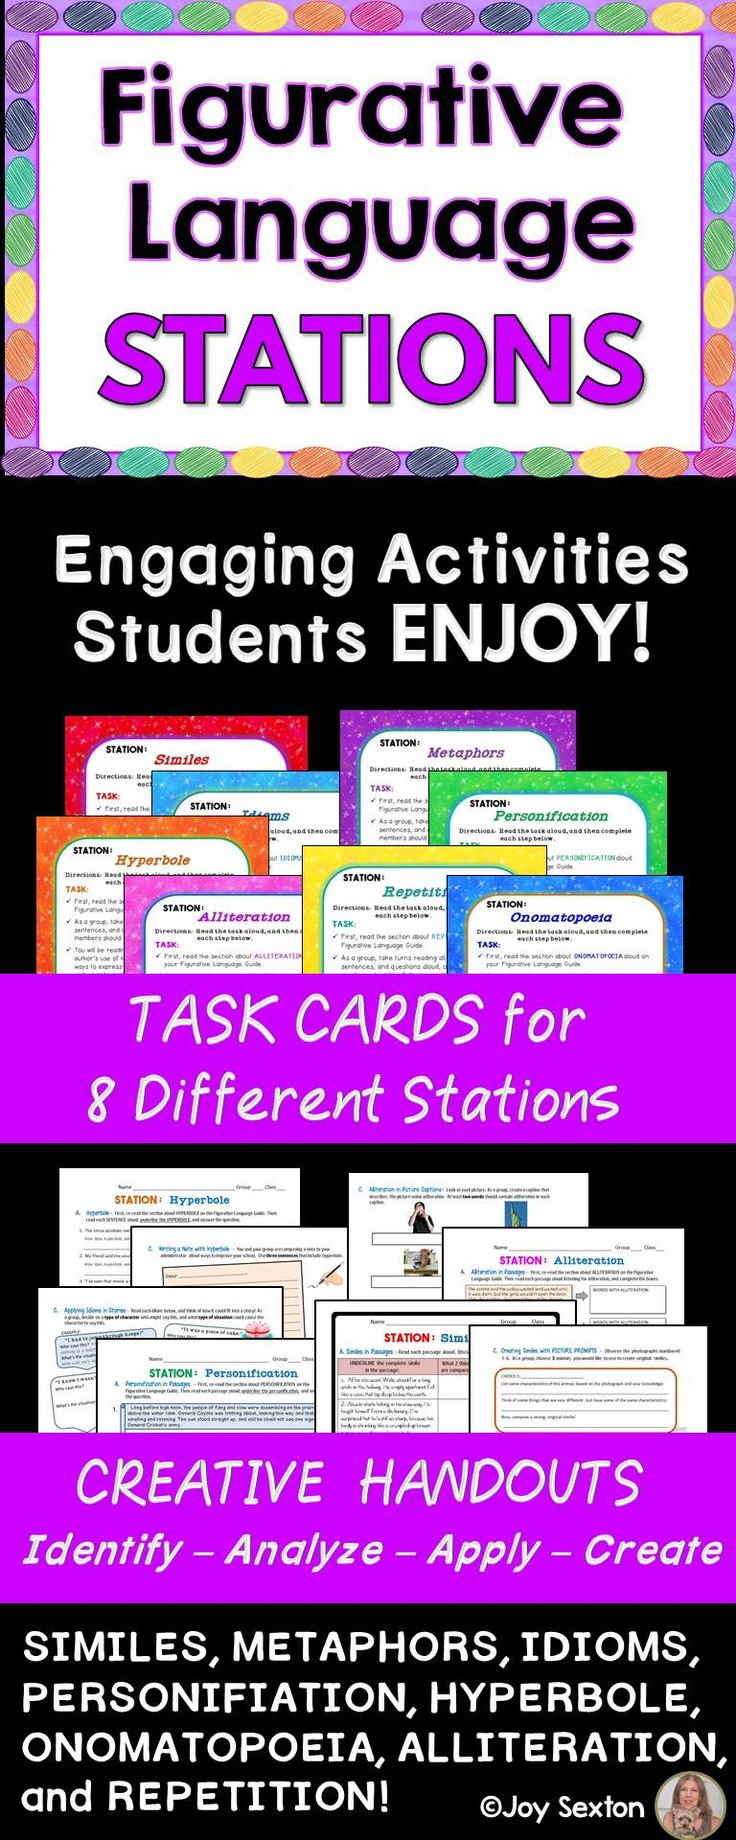 Would you like your students more clear on figurative language and sound devices? Actively engage them with this creative station work! You get 8 different stations with task cards and inviting student handouts for each. Students identify and analyze figurative language, and then brainstorm to apply their knowledge in imaginative ways.